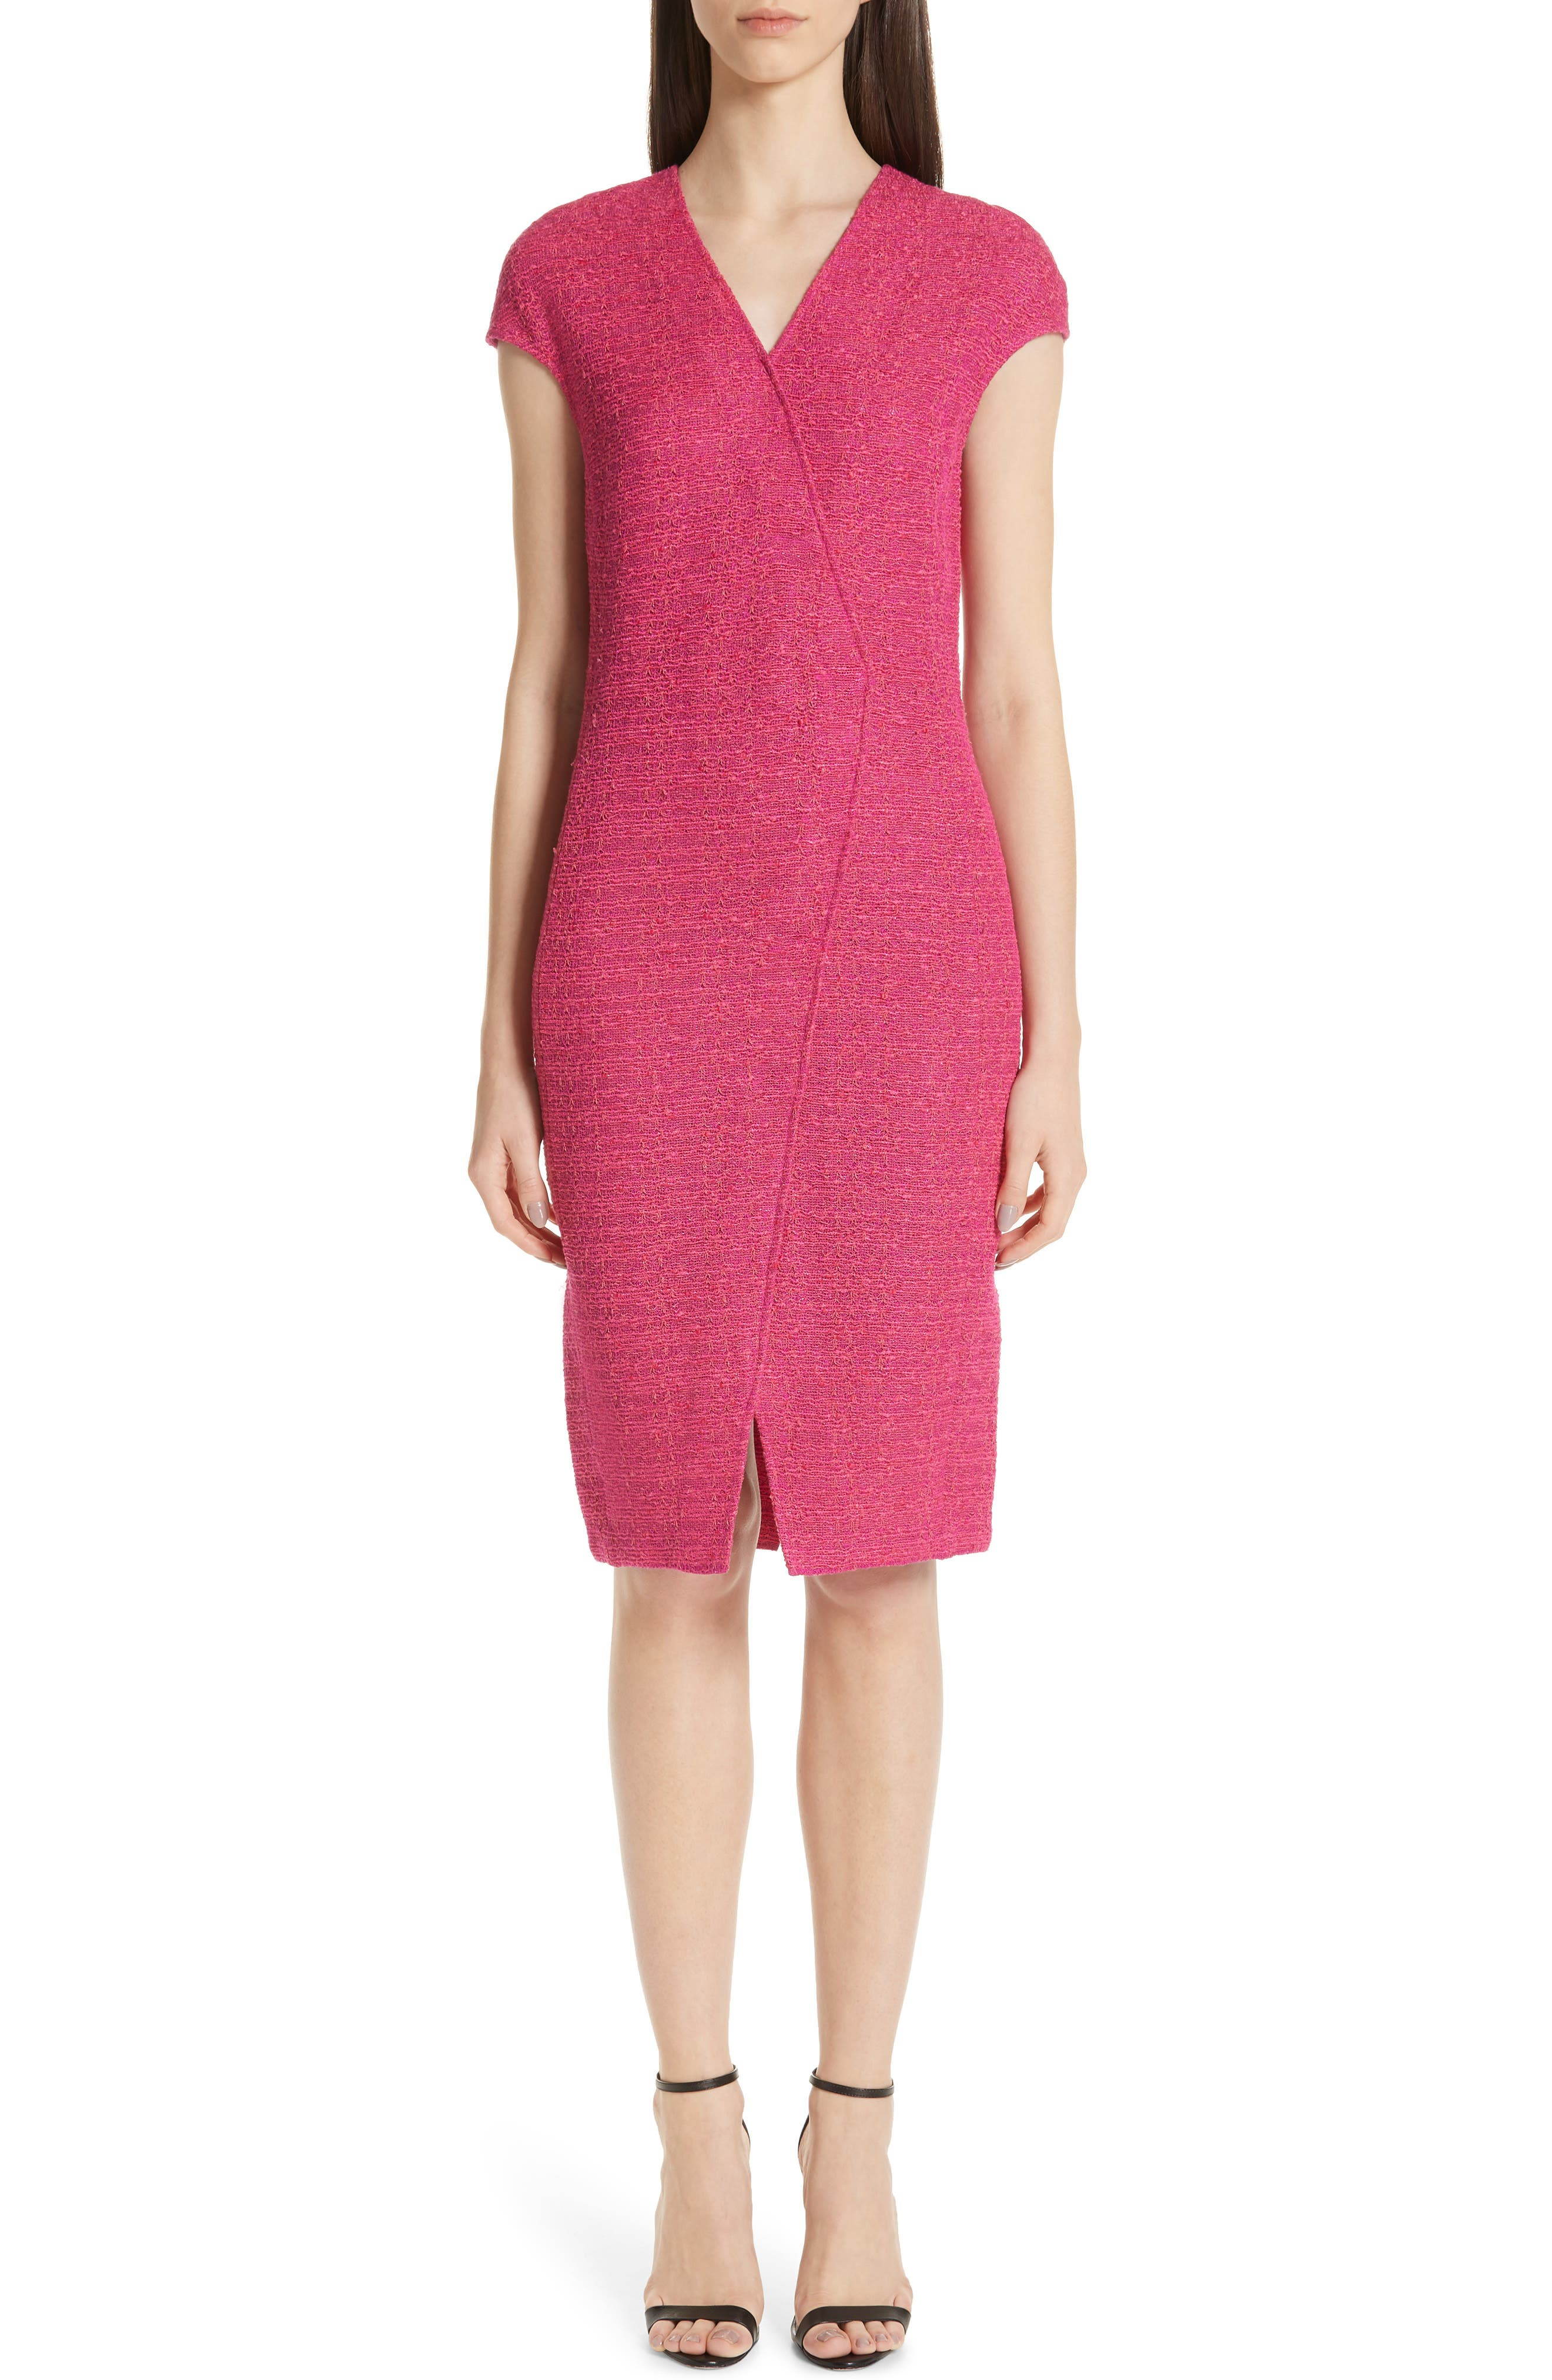 St. John Collection Andrea Knit Cap Sleeve Dress, Pink